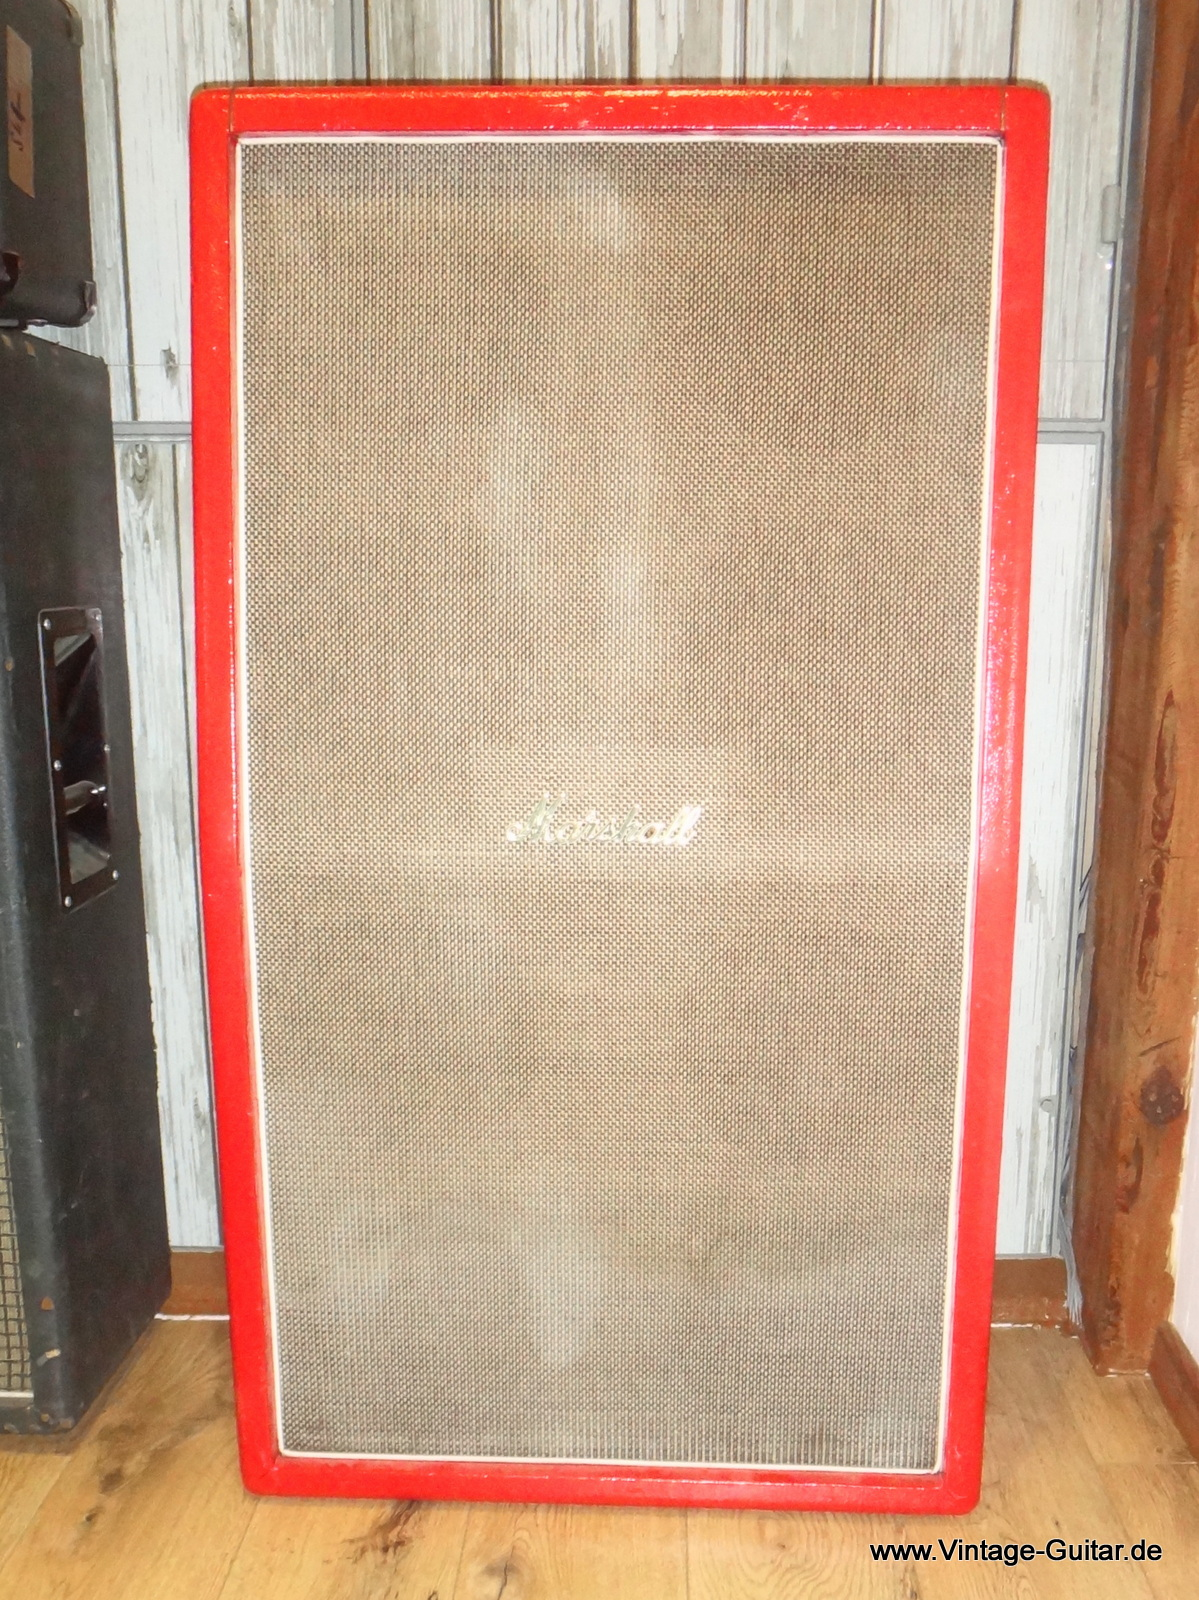 Marshall 8 X 10inch Cabinet 1960's Red Tolex Amp For Sale Vintage